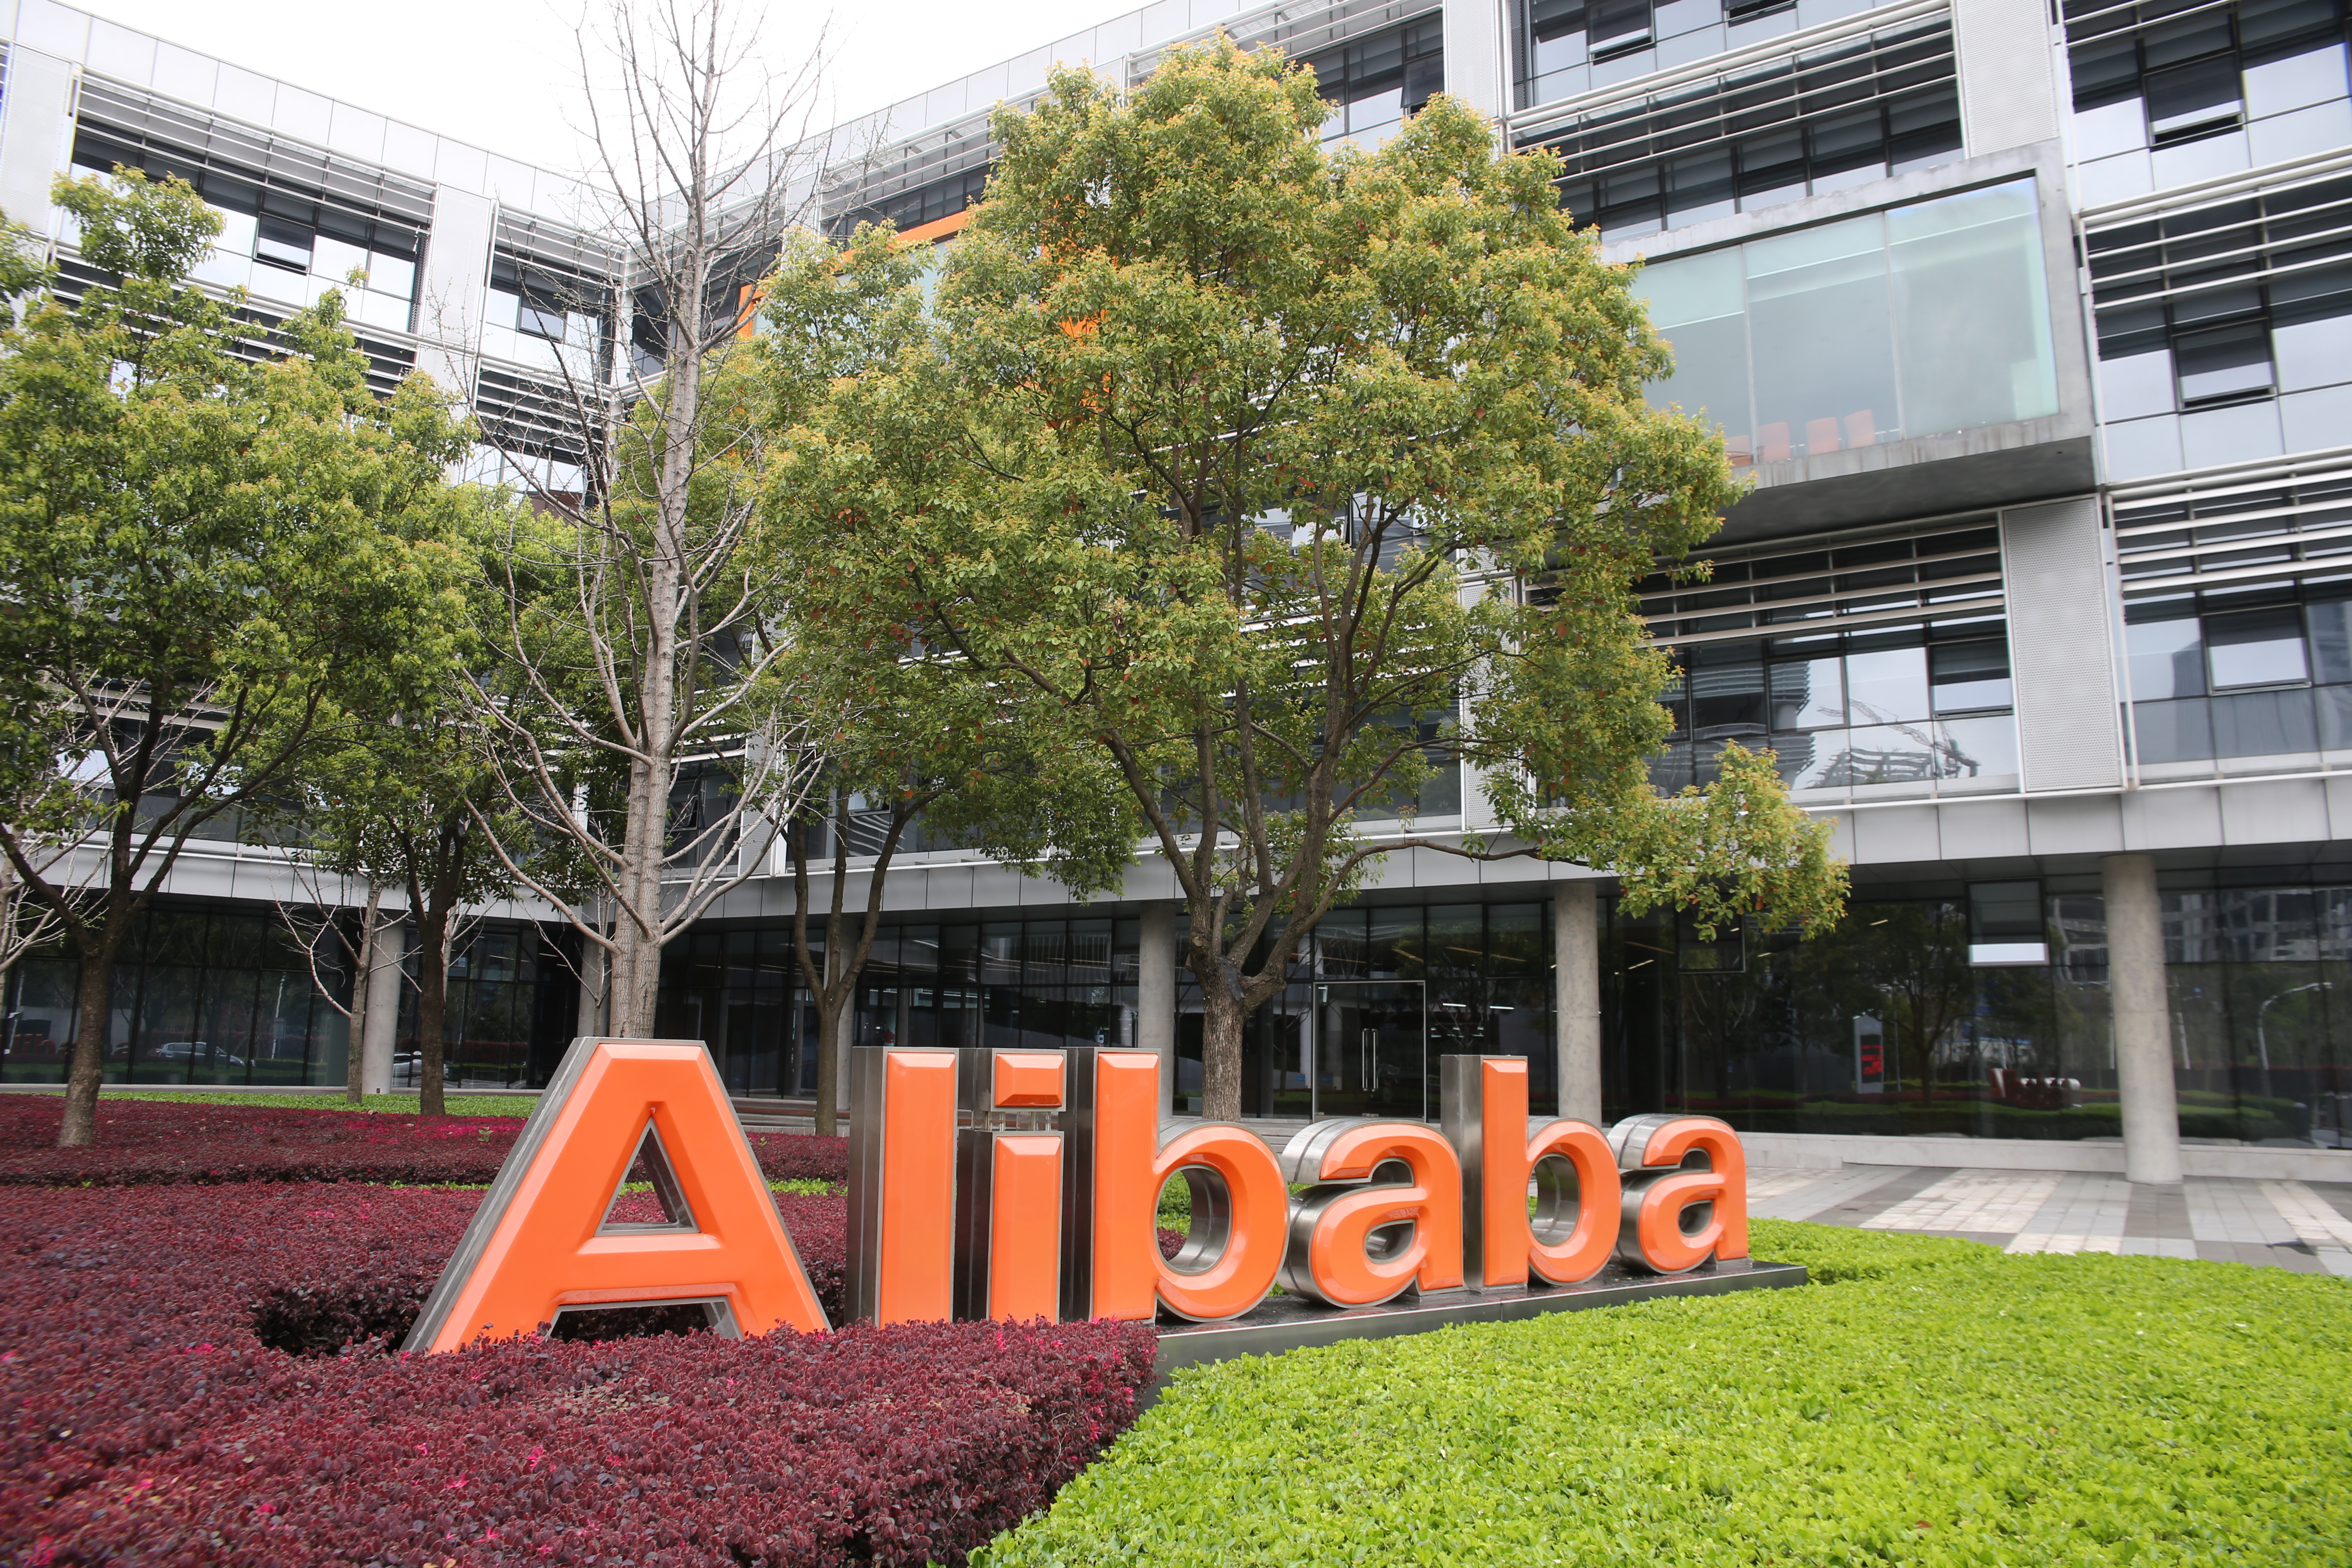 Alibaba Group headquarters on March 29, 2014 in Hangzhou, China.